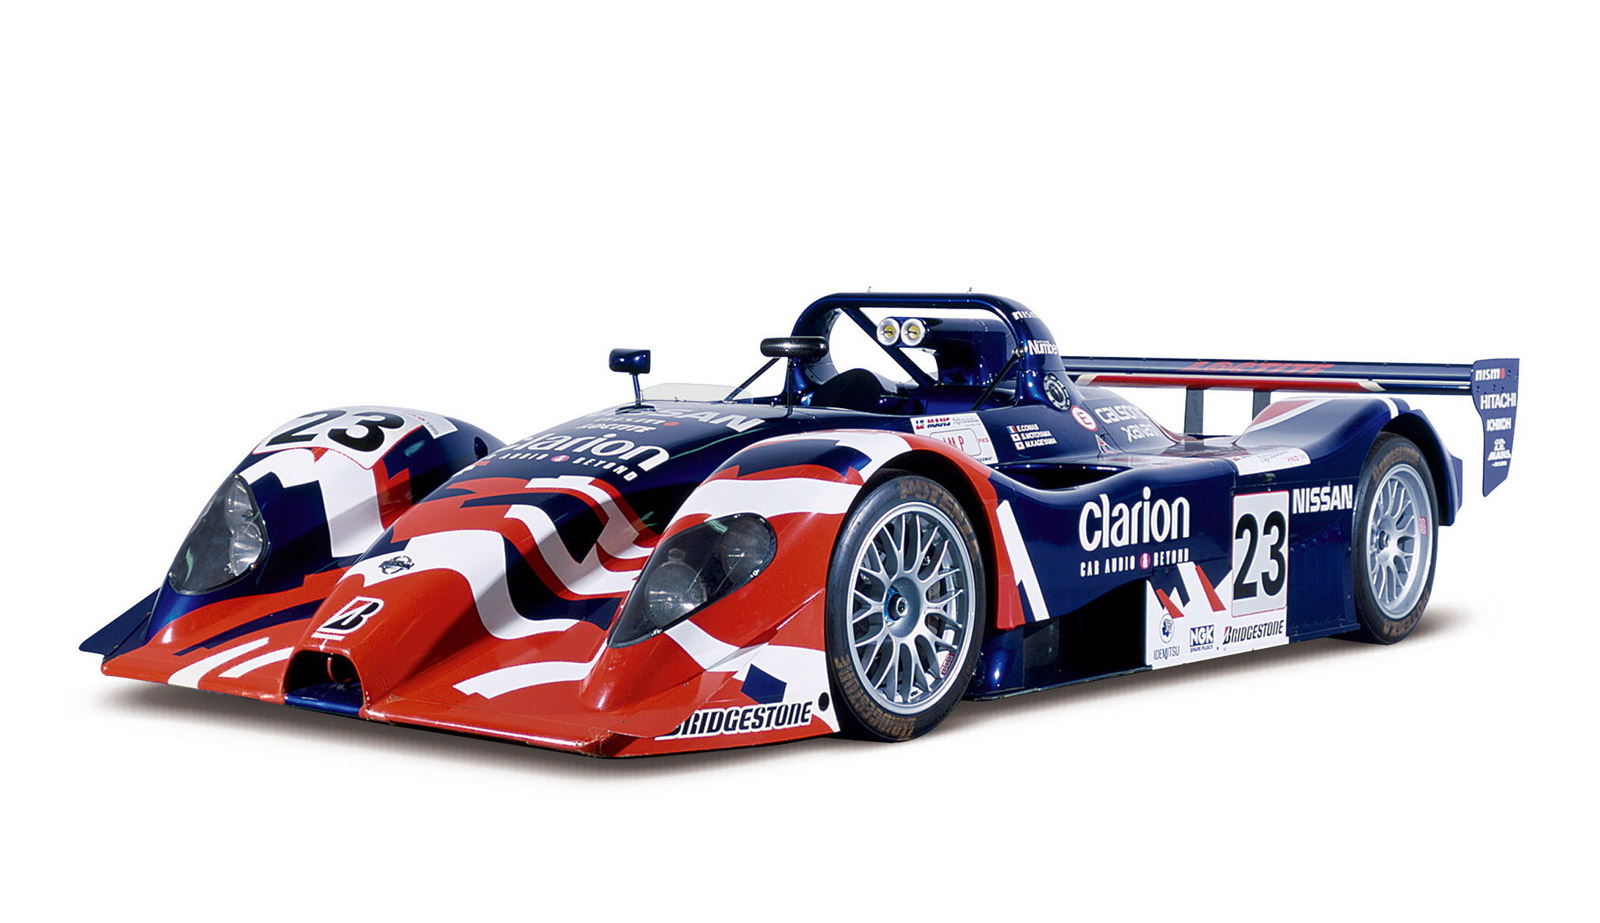 2014 Le Mans Return Part Of Nissans Expanded Motorsport Program